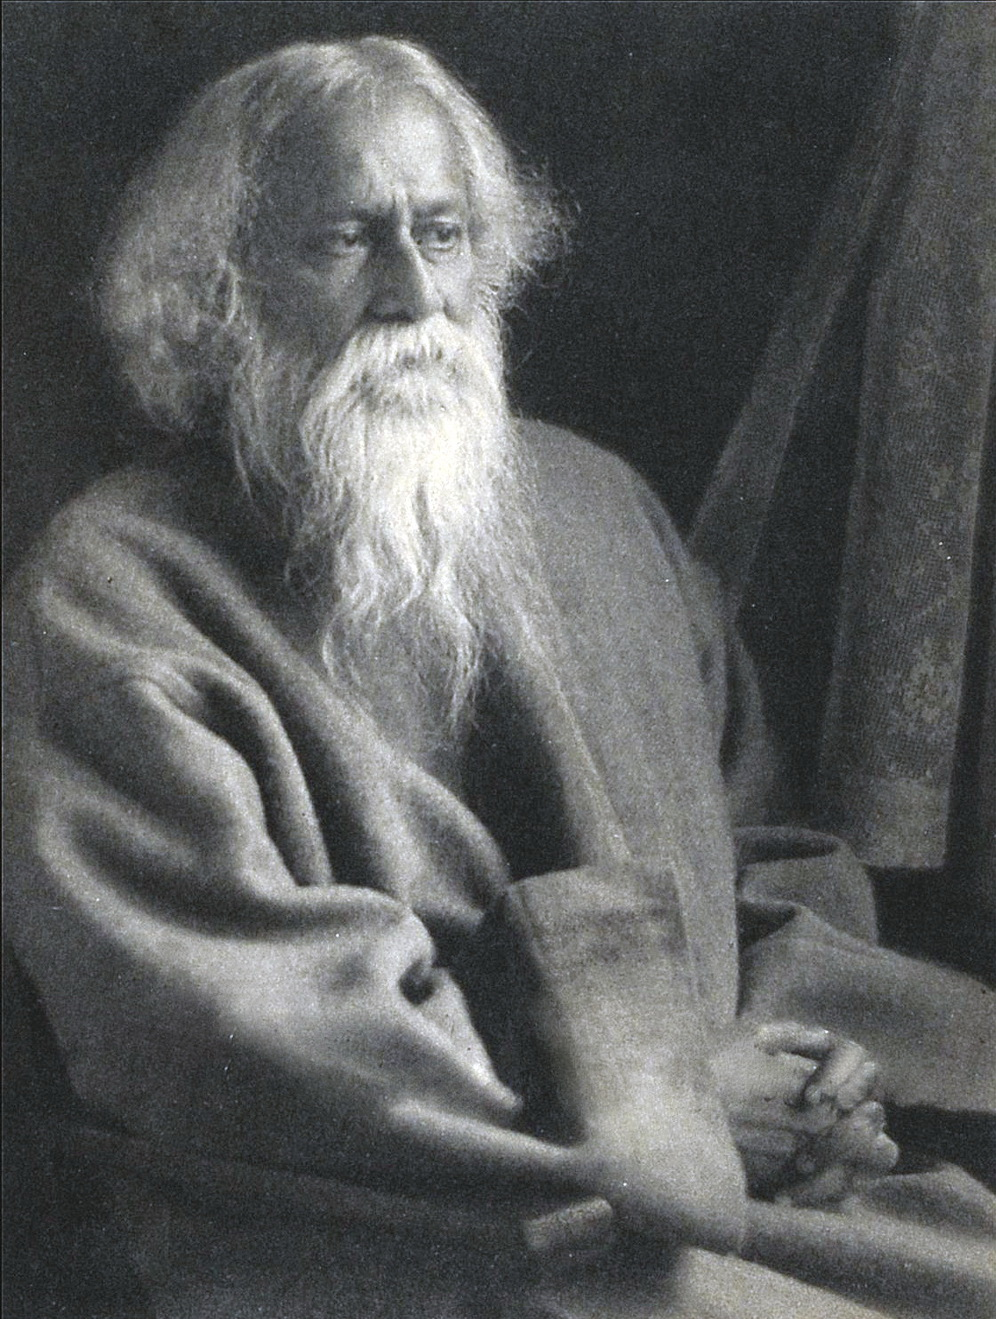 file rabindranath tagore unknown location jpg  file rabindranath tagore unknown location jpg